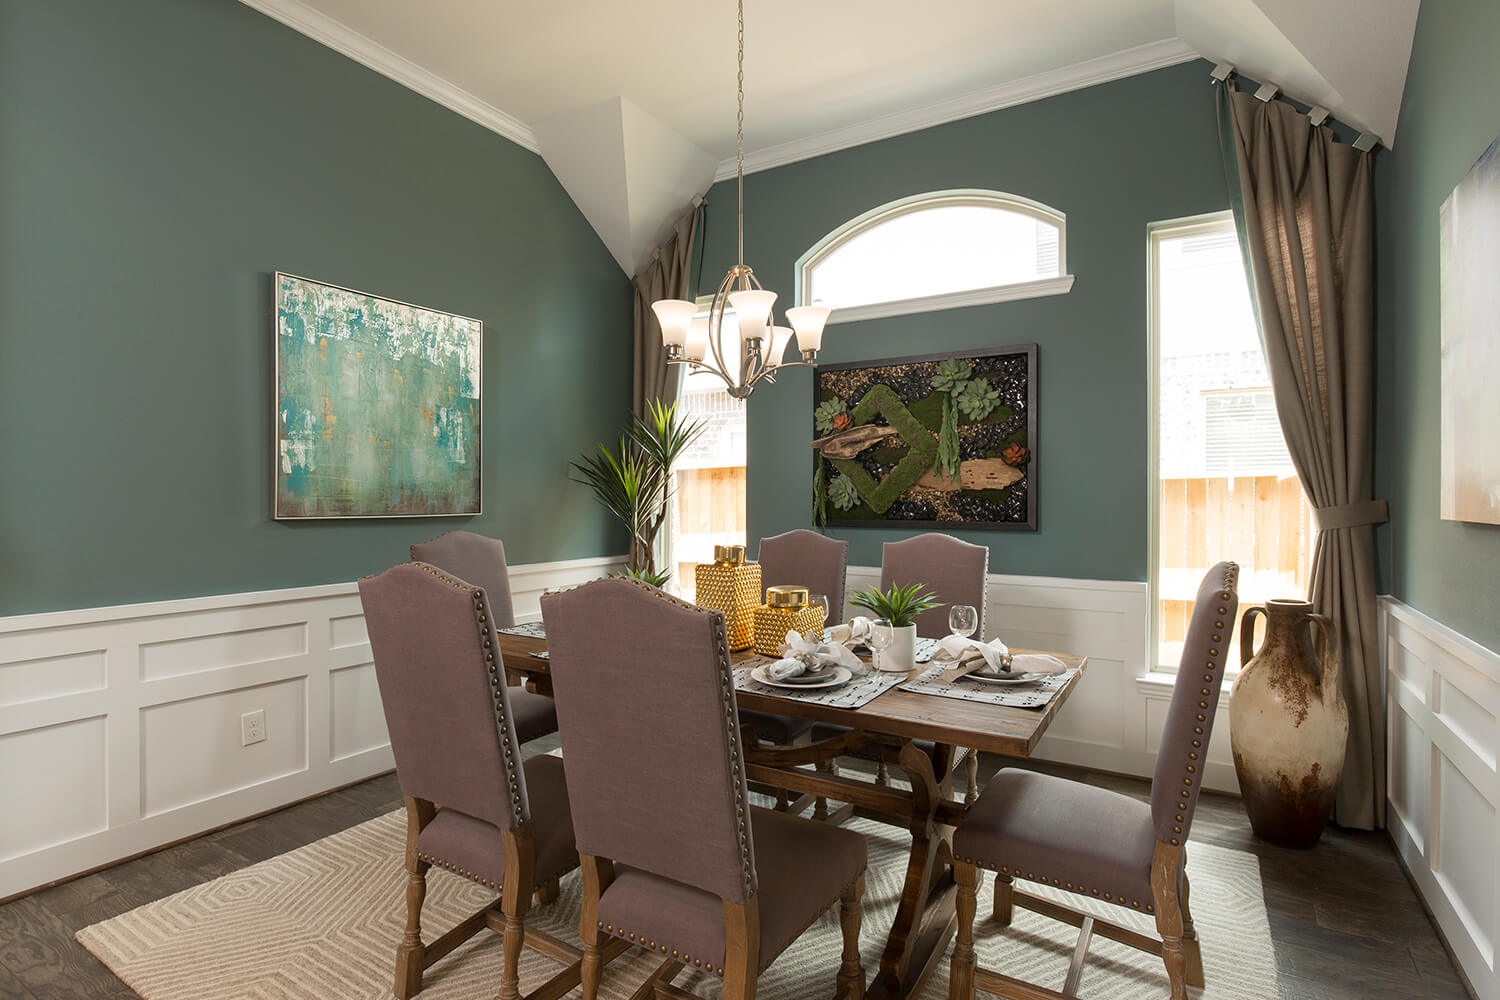 Dining Room - Lindsay (6495 Plan)